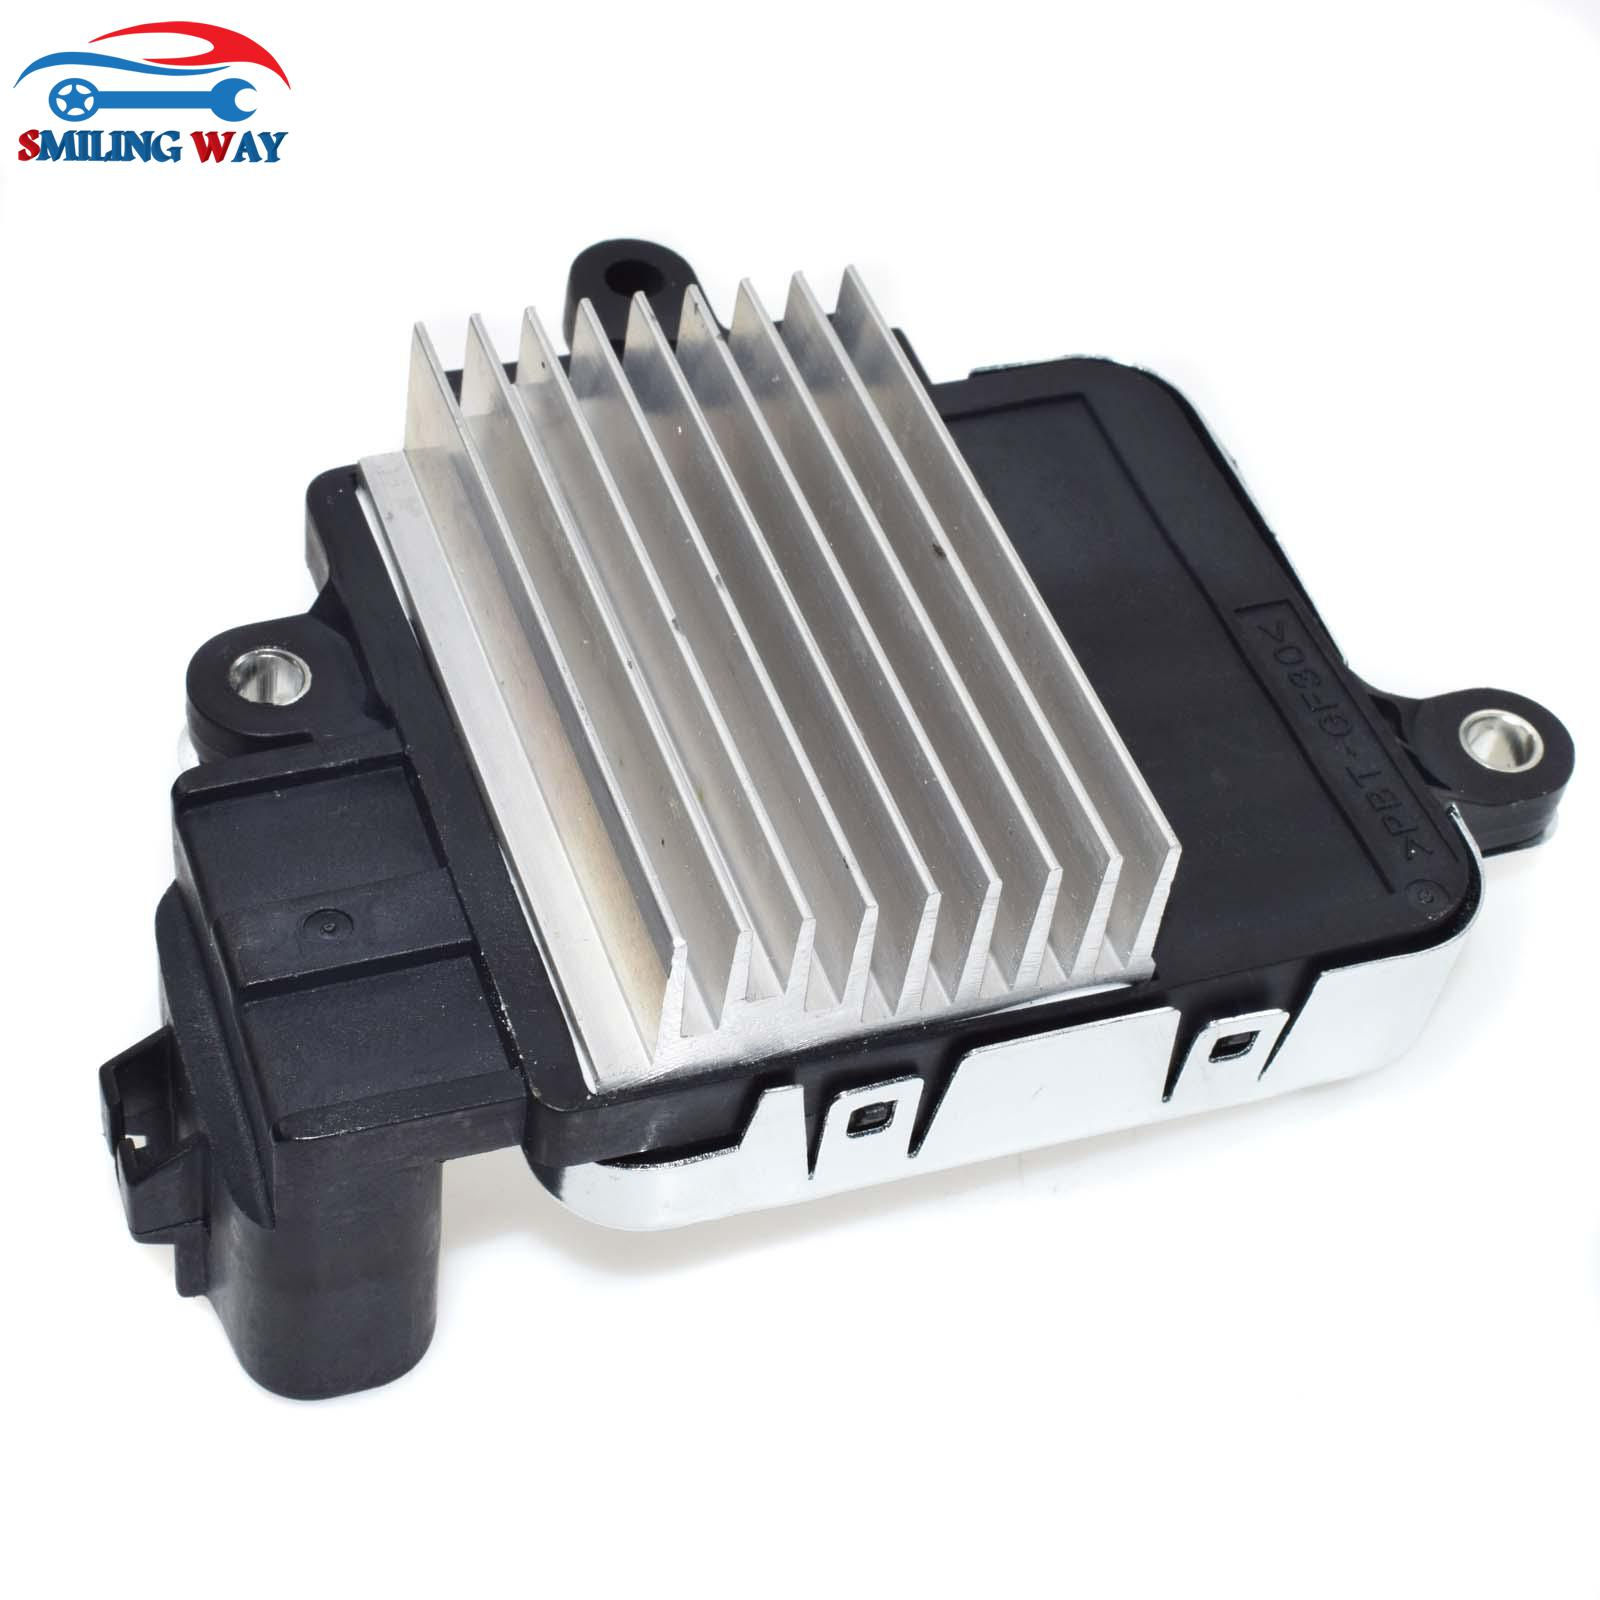 hight resolution of smiling way blower motor resistor for toyota camry highlander venza avalon rav4 sienna lexus es350 gs300 gs350 gs430 gs450h in blower motors from